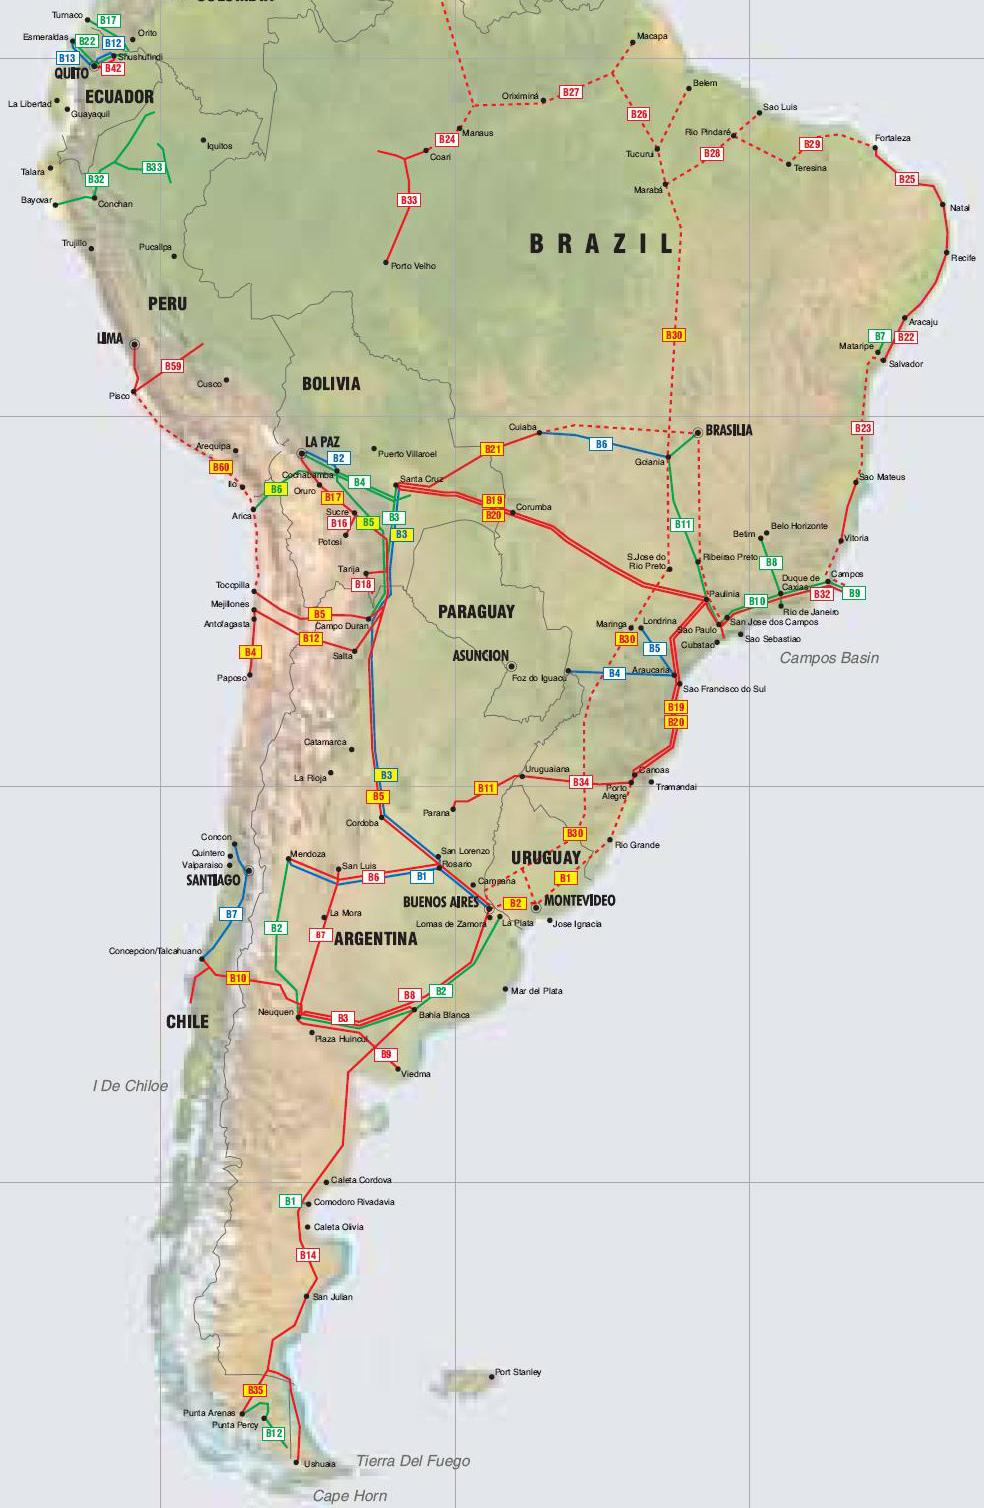 Argentina, Bolivia, zil, Chile, Ecuador, Peru and Uruguay ... on map of copiapo chile, map of nuclear power plants in the world, map of patagonia chile, map chile argentina border, political map of chile, ecuador and chile, map of el cono sur, map of southern chile, map of patagonia region, map of peru, map of chile with cities, printable map of chile, political leader of chile, map show patagonia, detailed map of chile, street map of villarrica in chile, map of chile coast, people from chile, map of chile and hawaii, large map of chile,